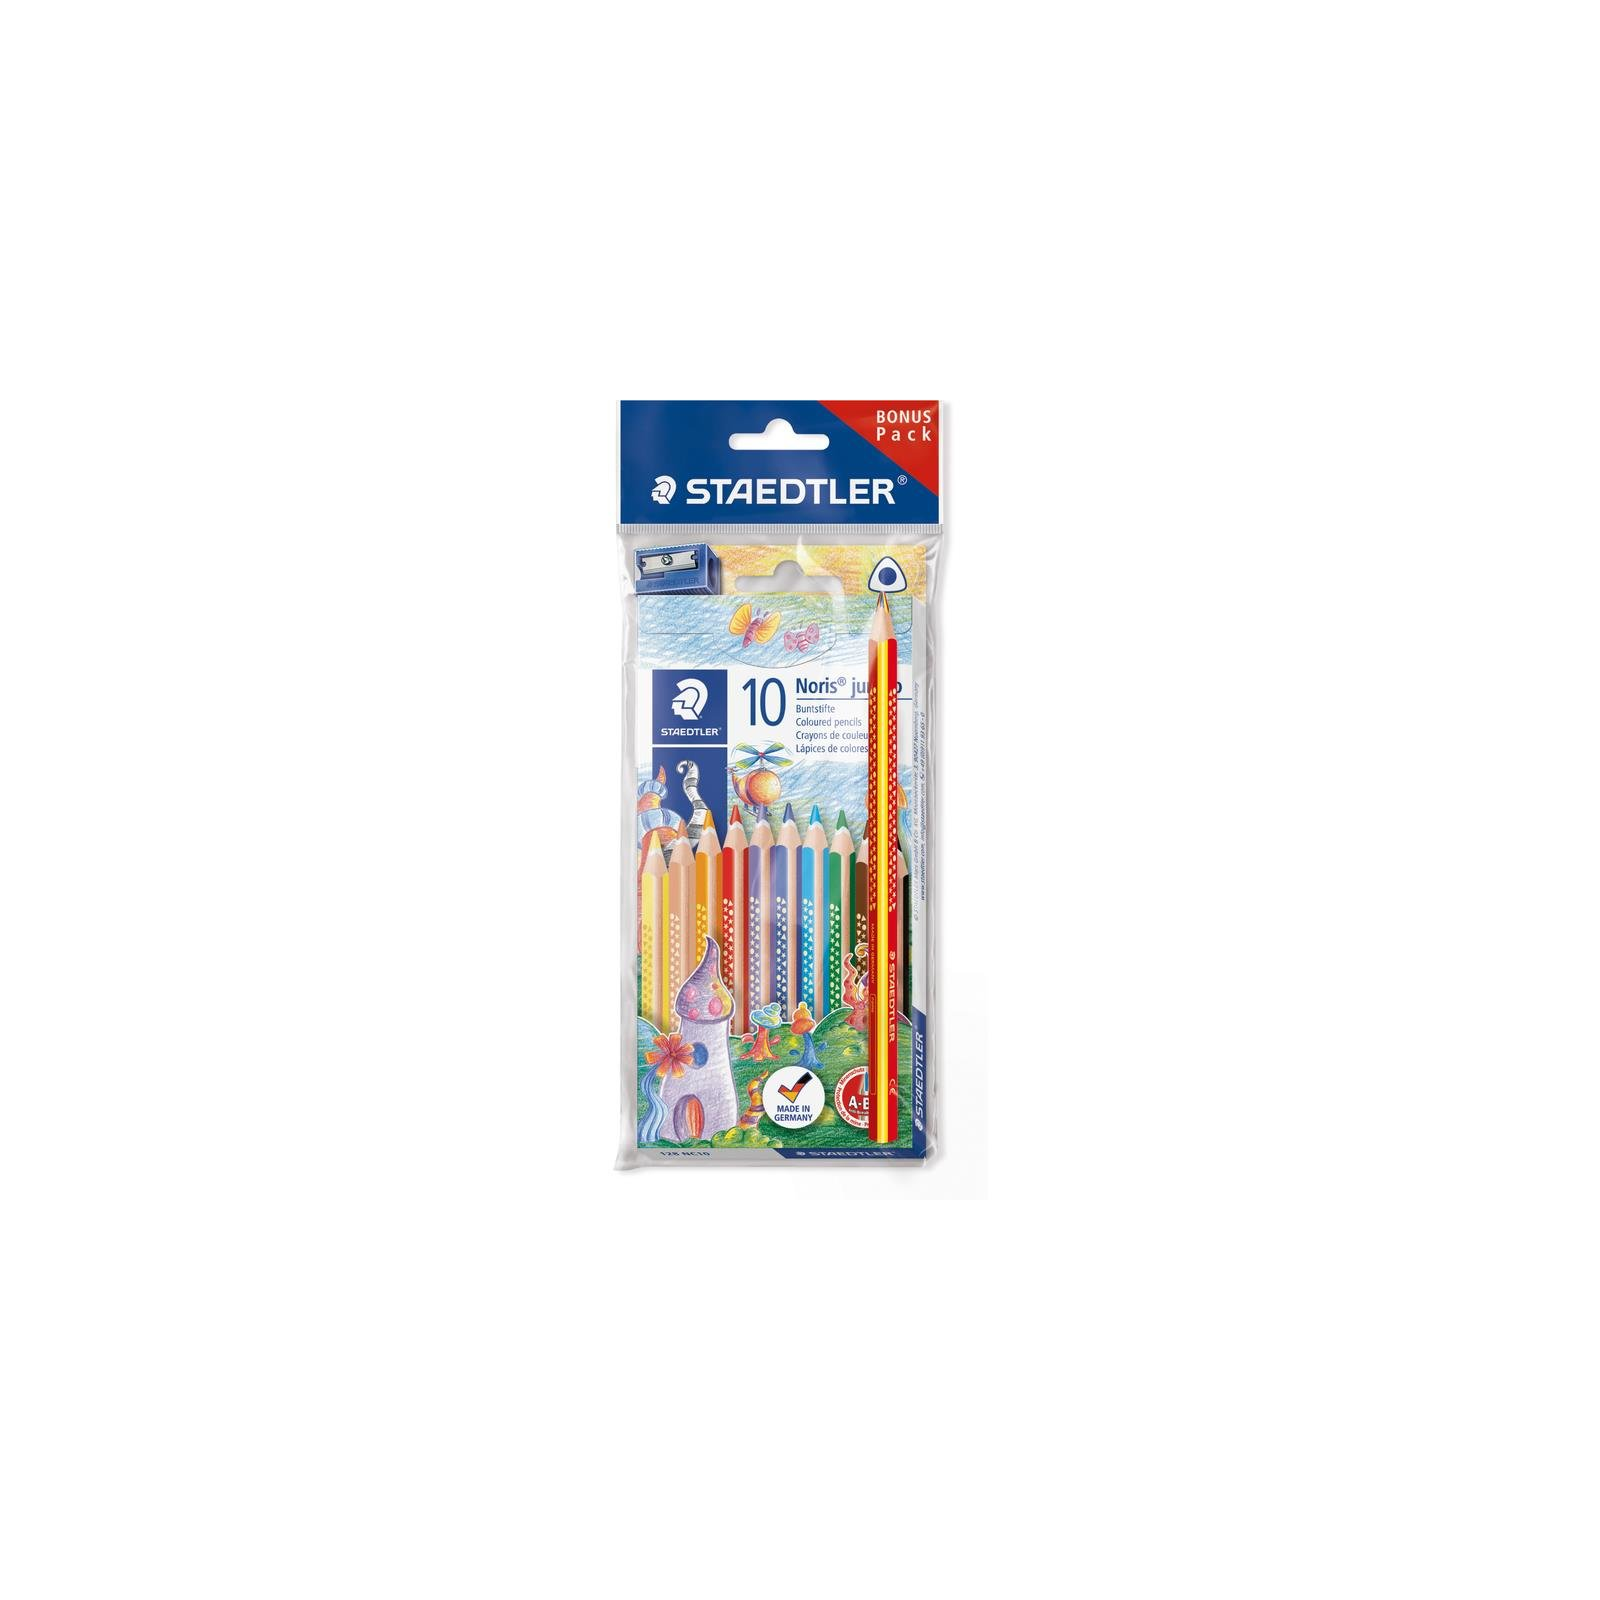 STAEDTLER Dreikant-Buntstift Noris Club jumbo Bonus Pack